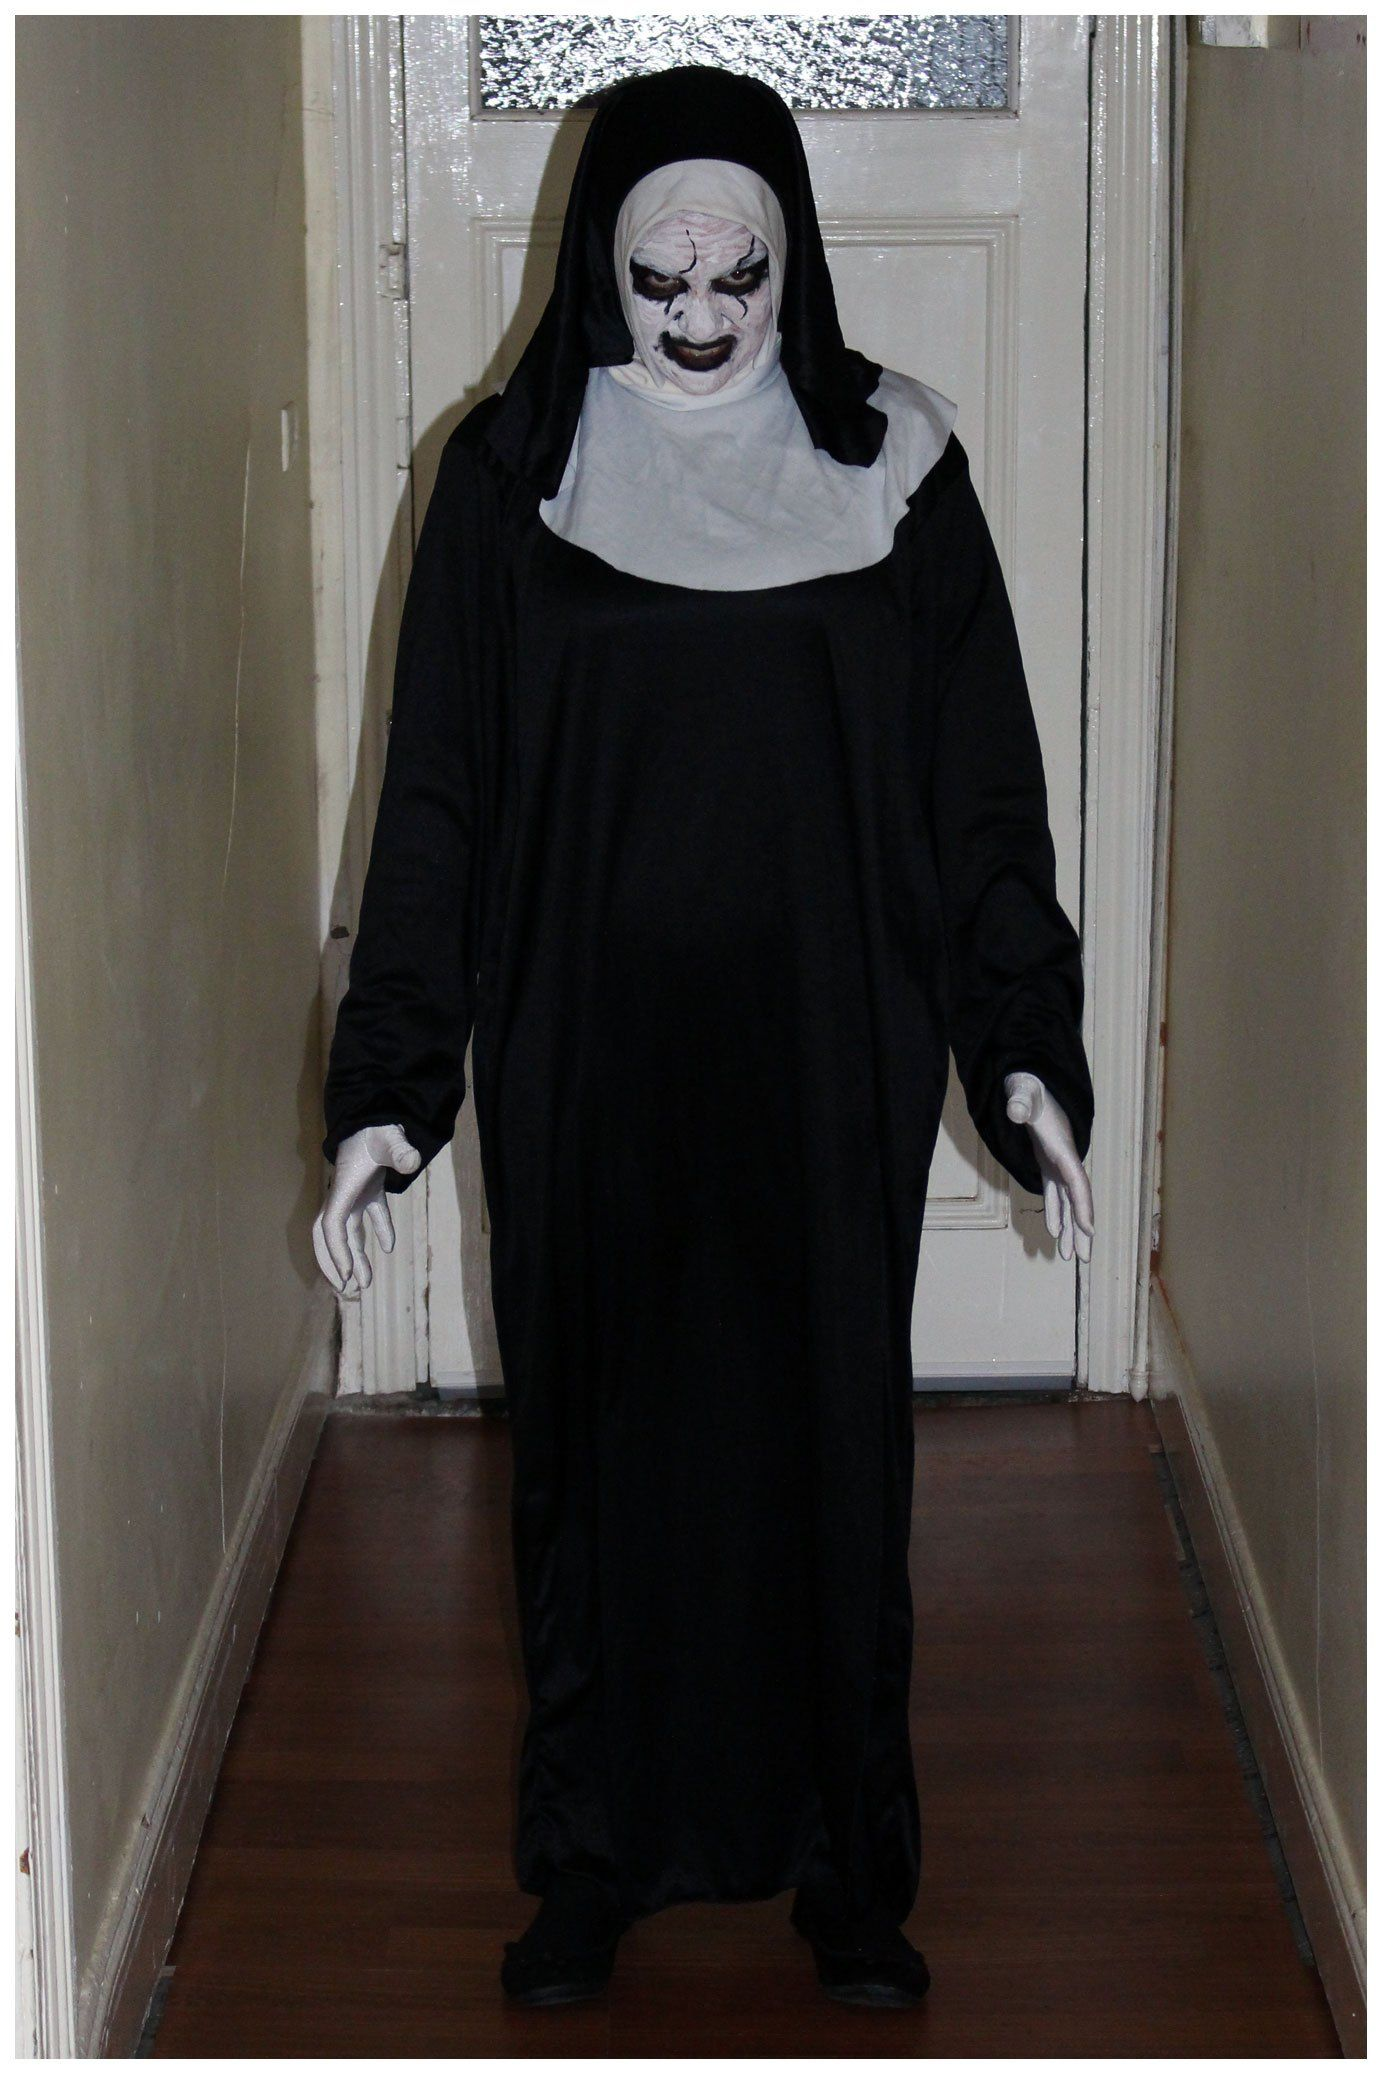 The conjuring 2 valak demon nun costume get more costume and the conjuring 2 valak demon nun costume get more costume and halloween inspiration on this blog over 400 homemade diy costume ideas solutioingenieria Image collections